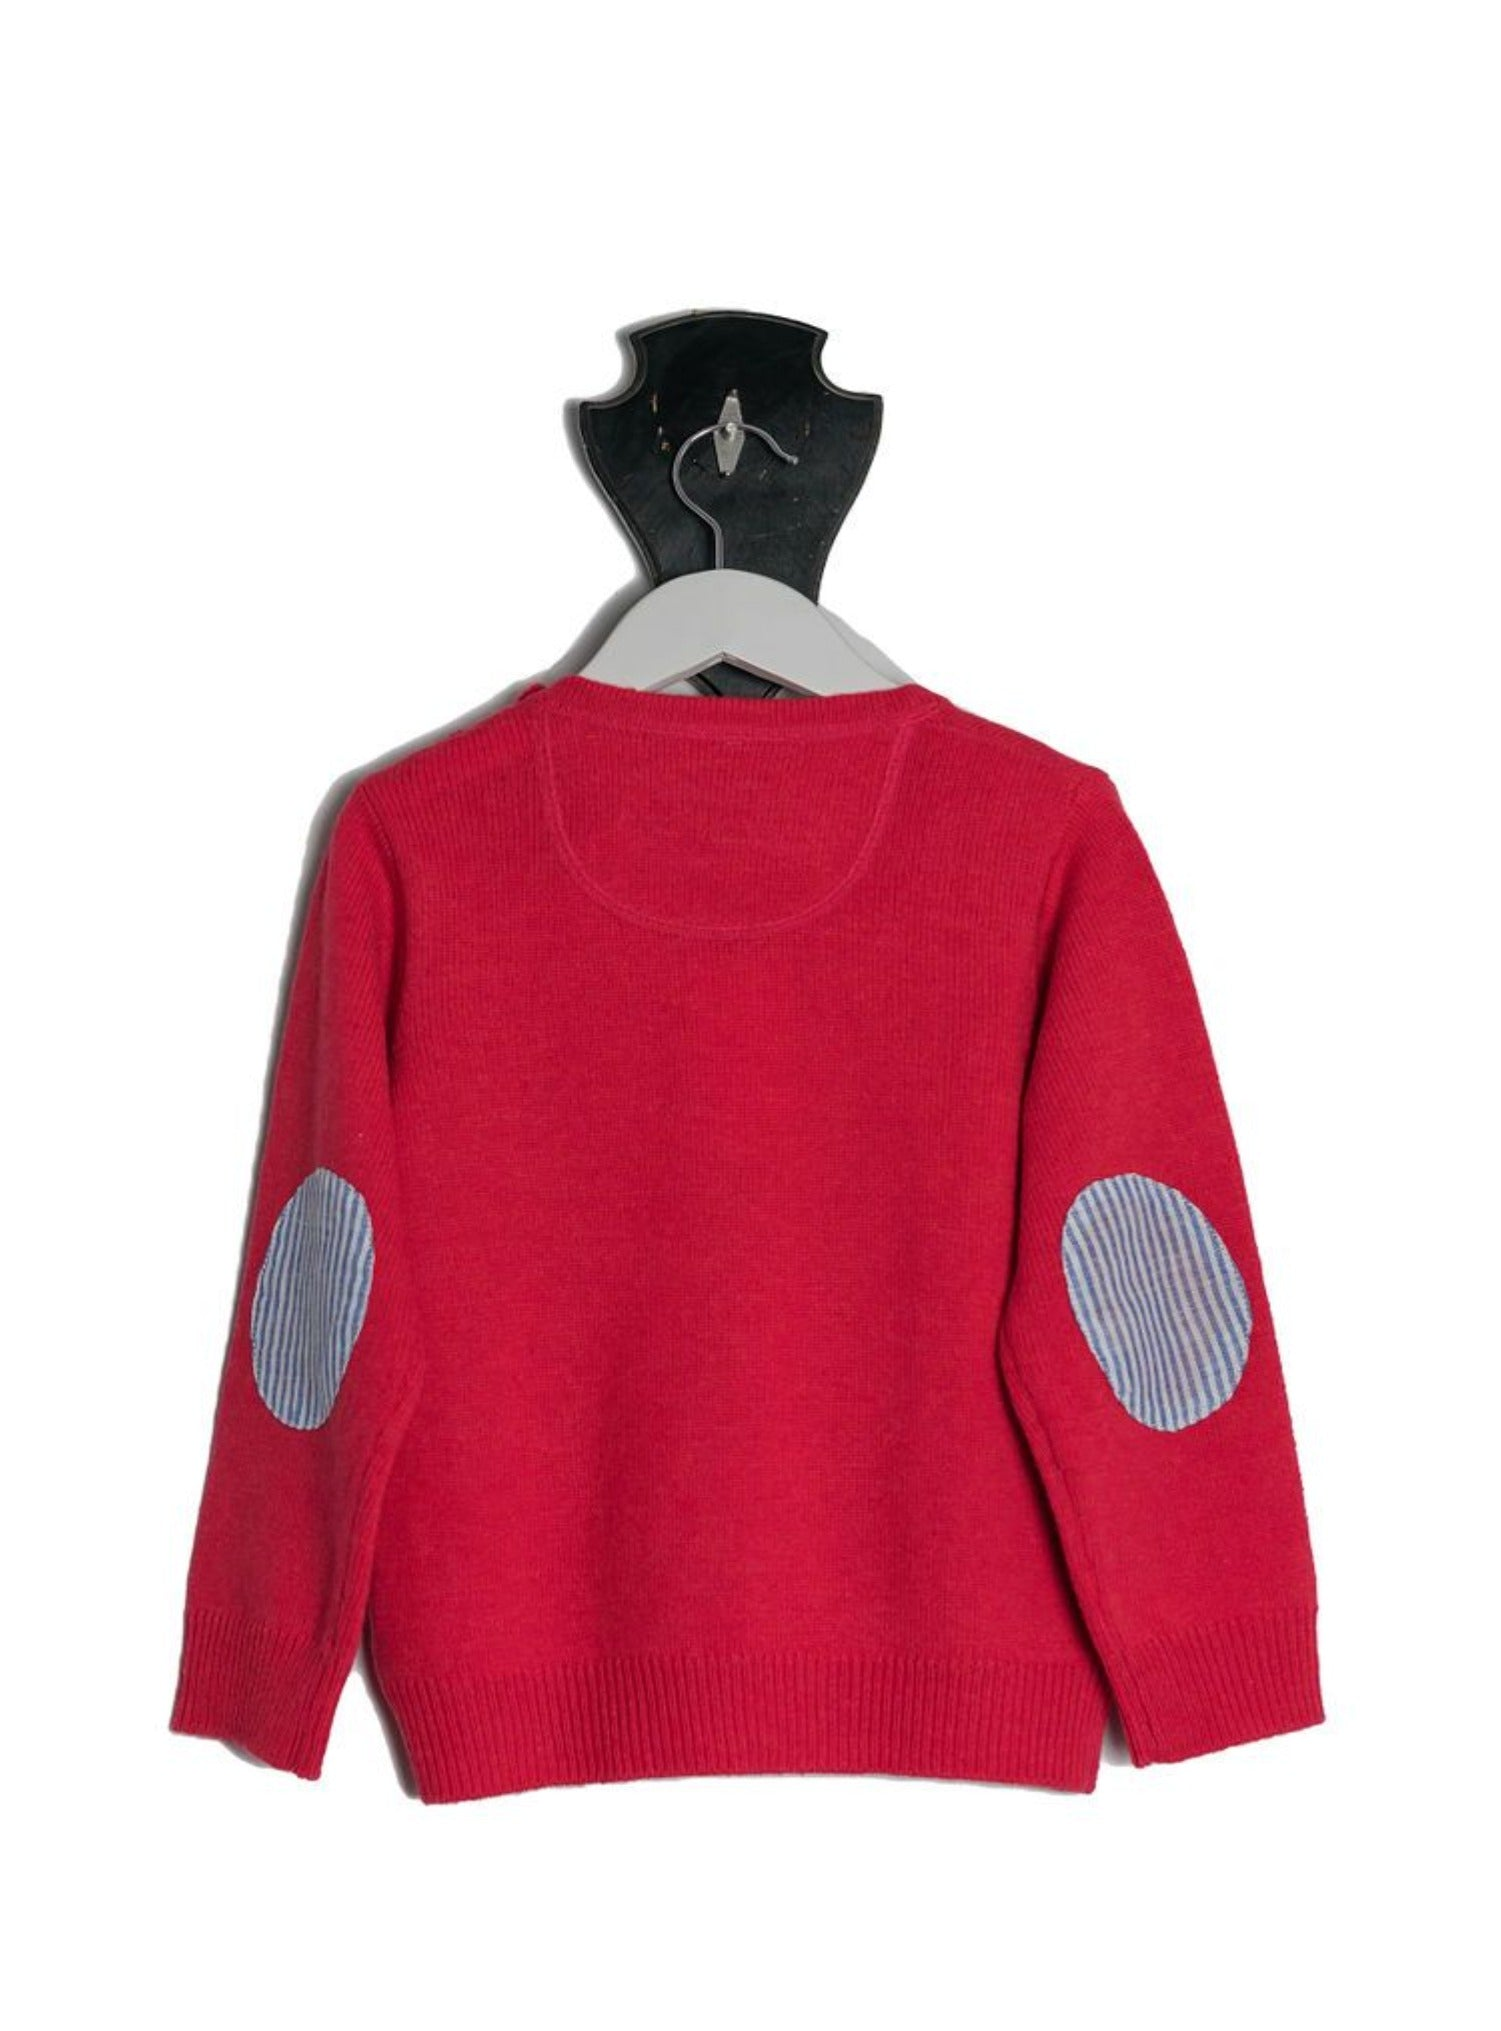 Red Freddie Crew Neck Jumper with Blue and White Stripe Patches